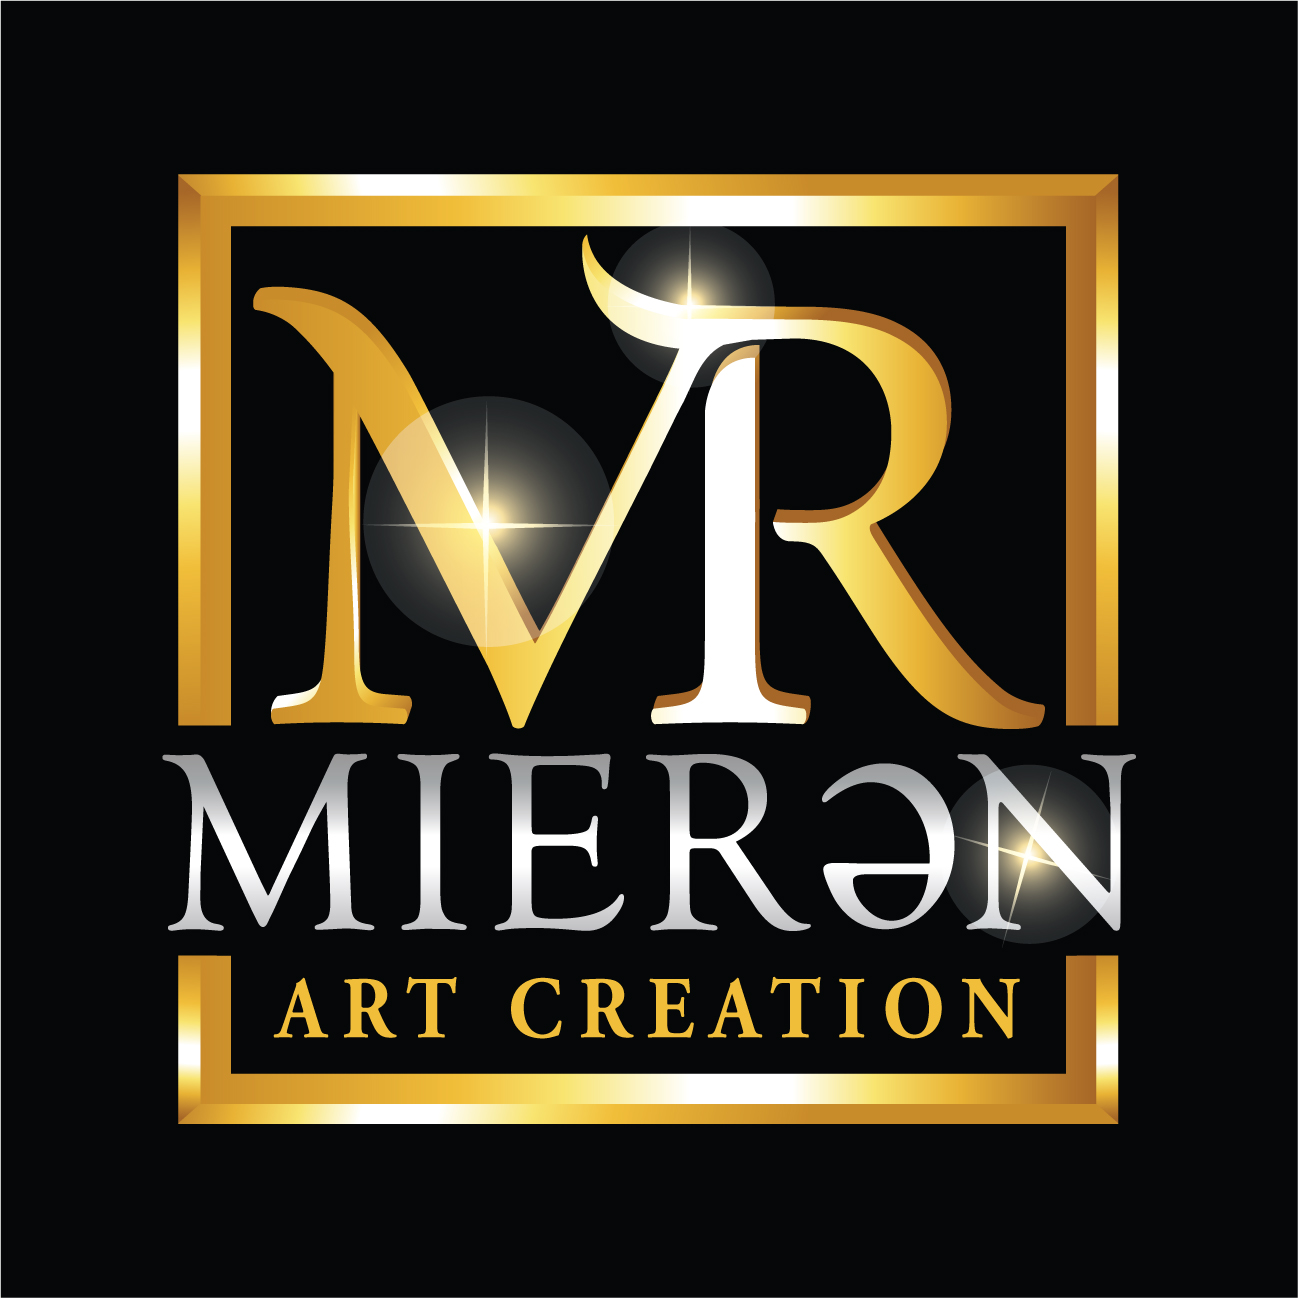 MIEREN ART CREATION primary image